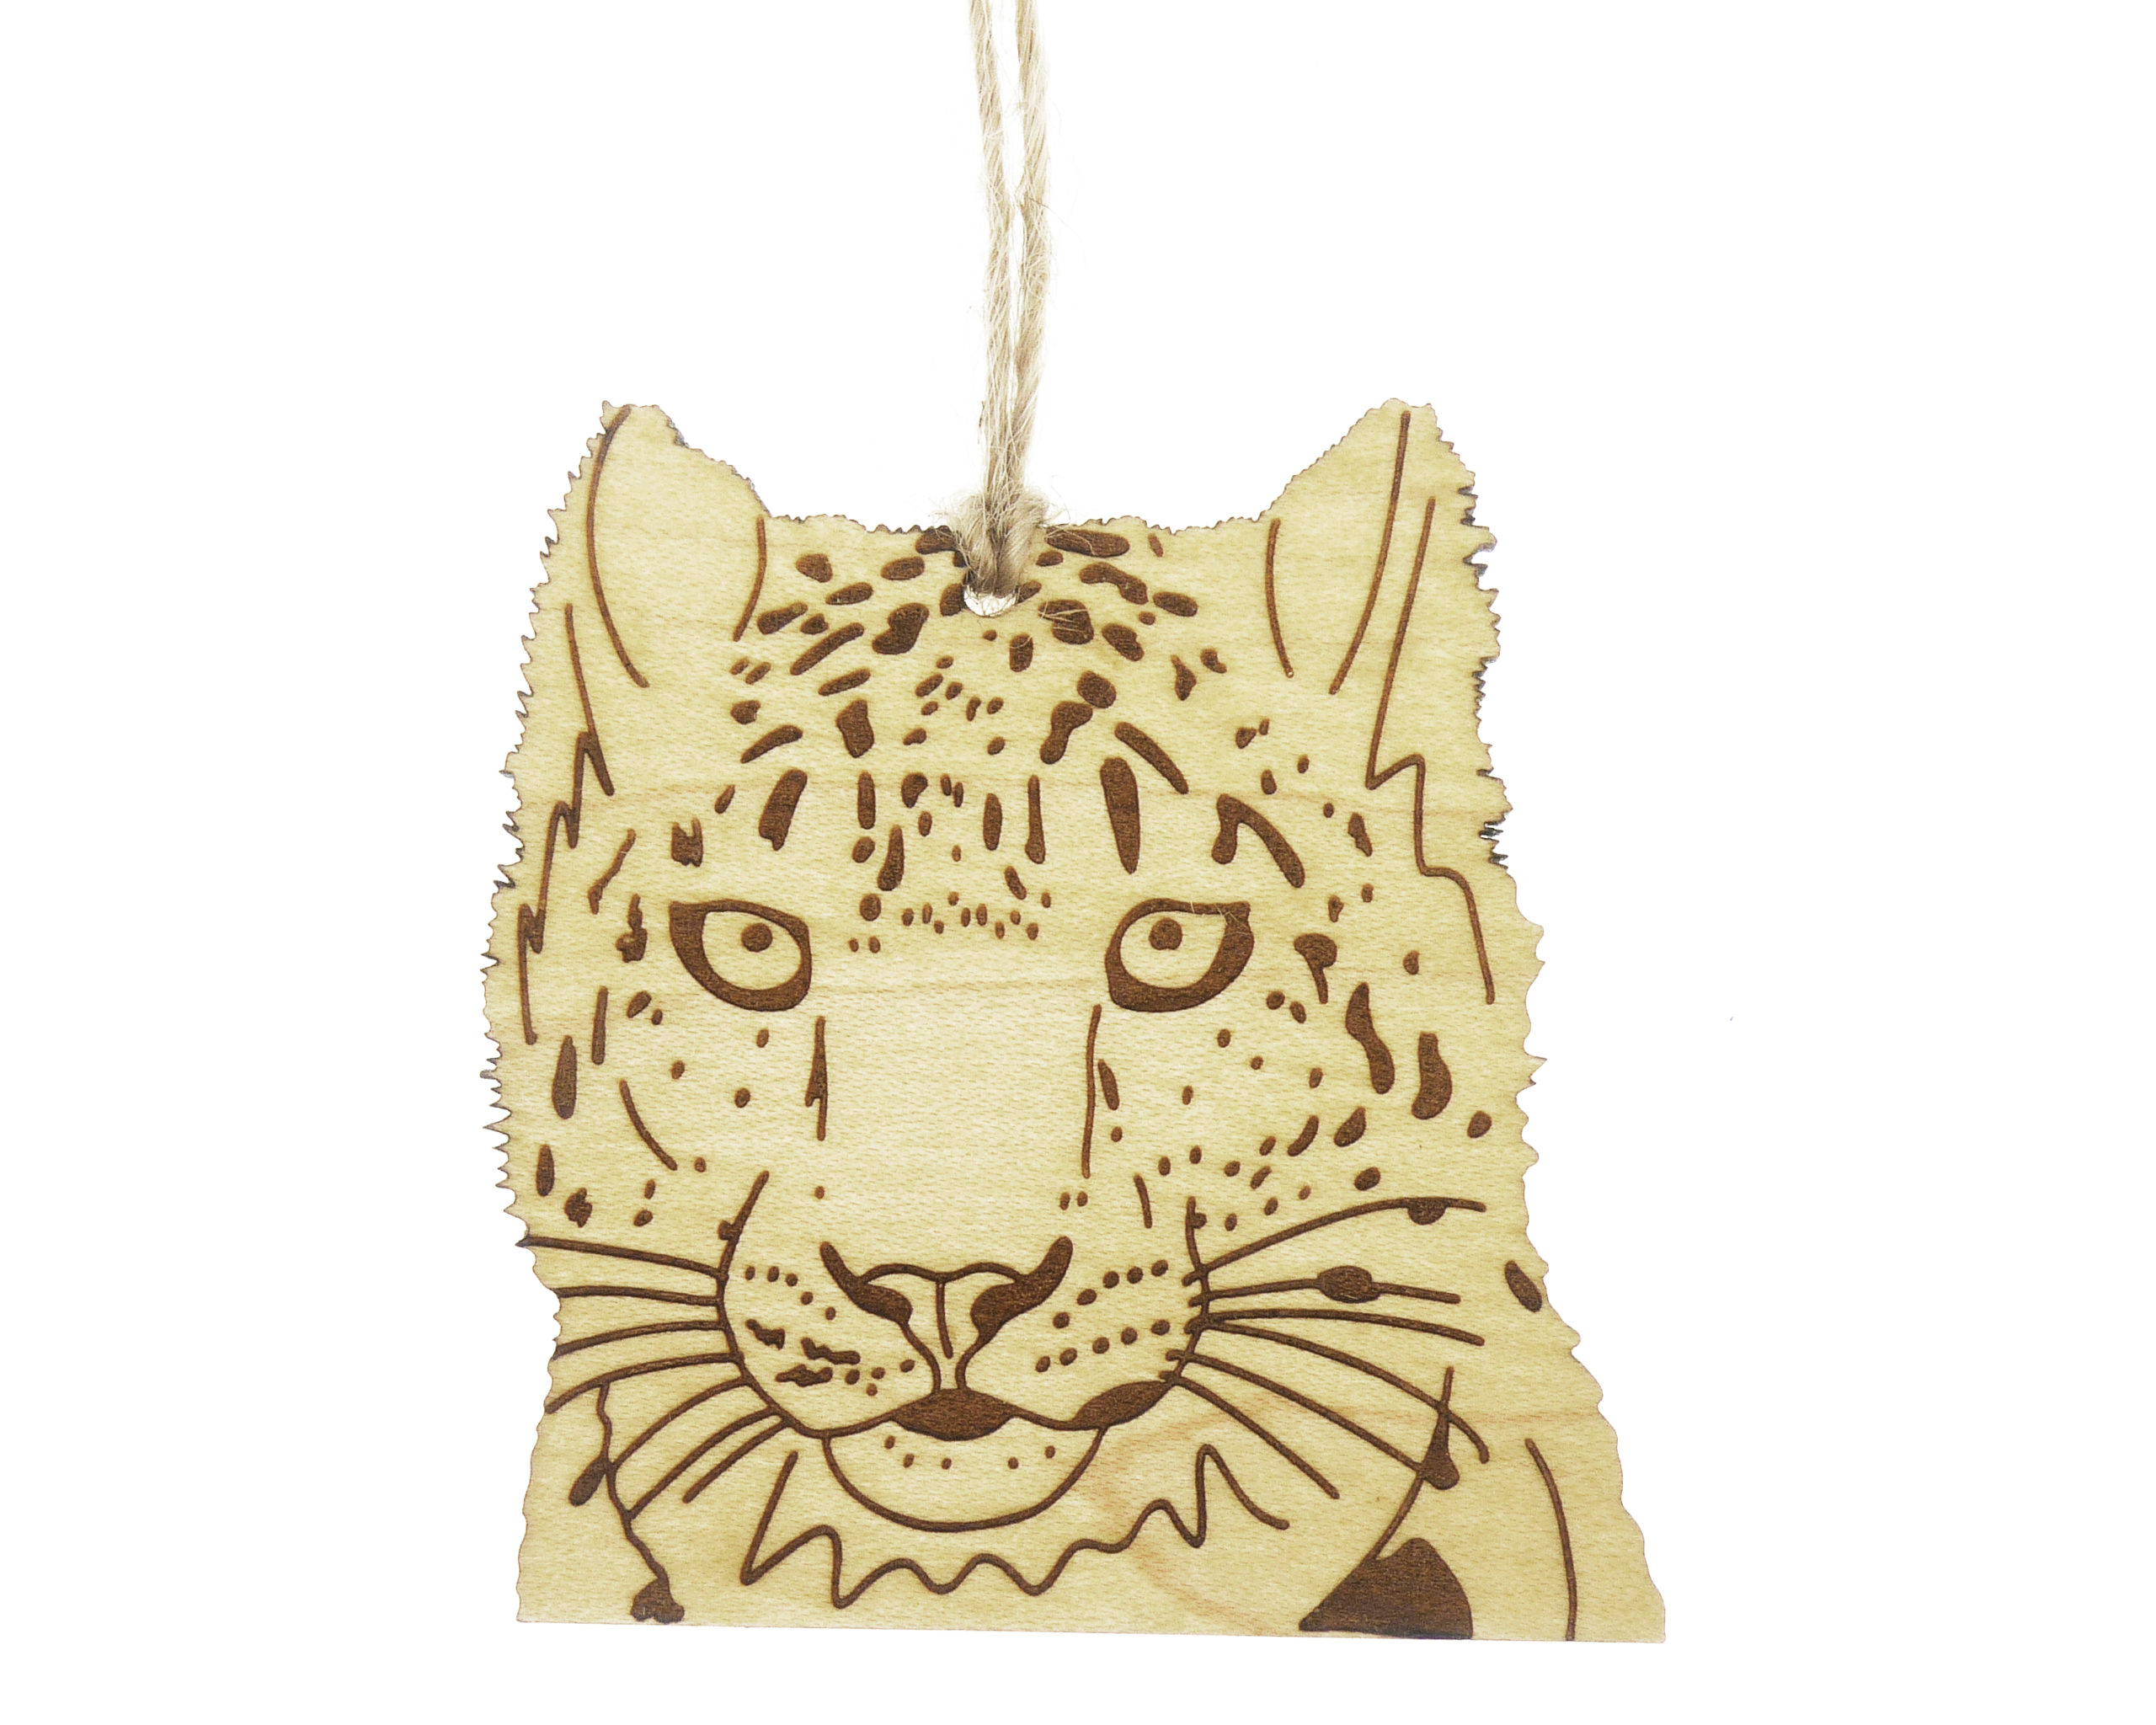 Leopard Ornament 01 1 scaled